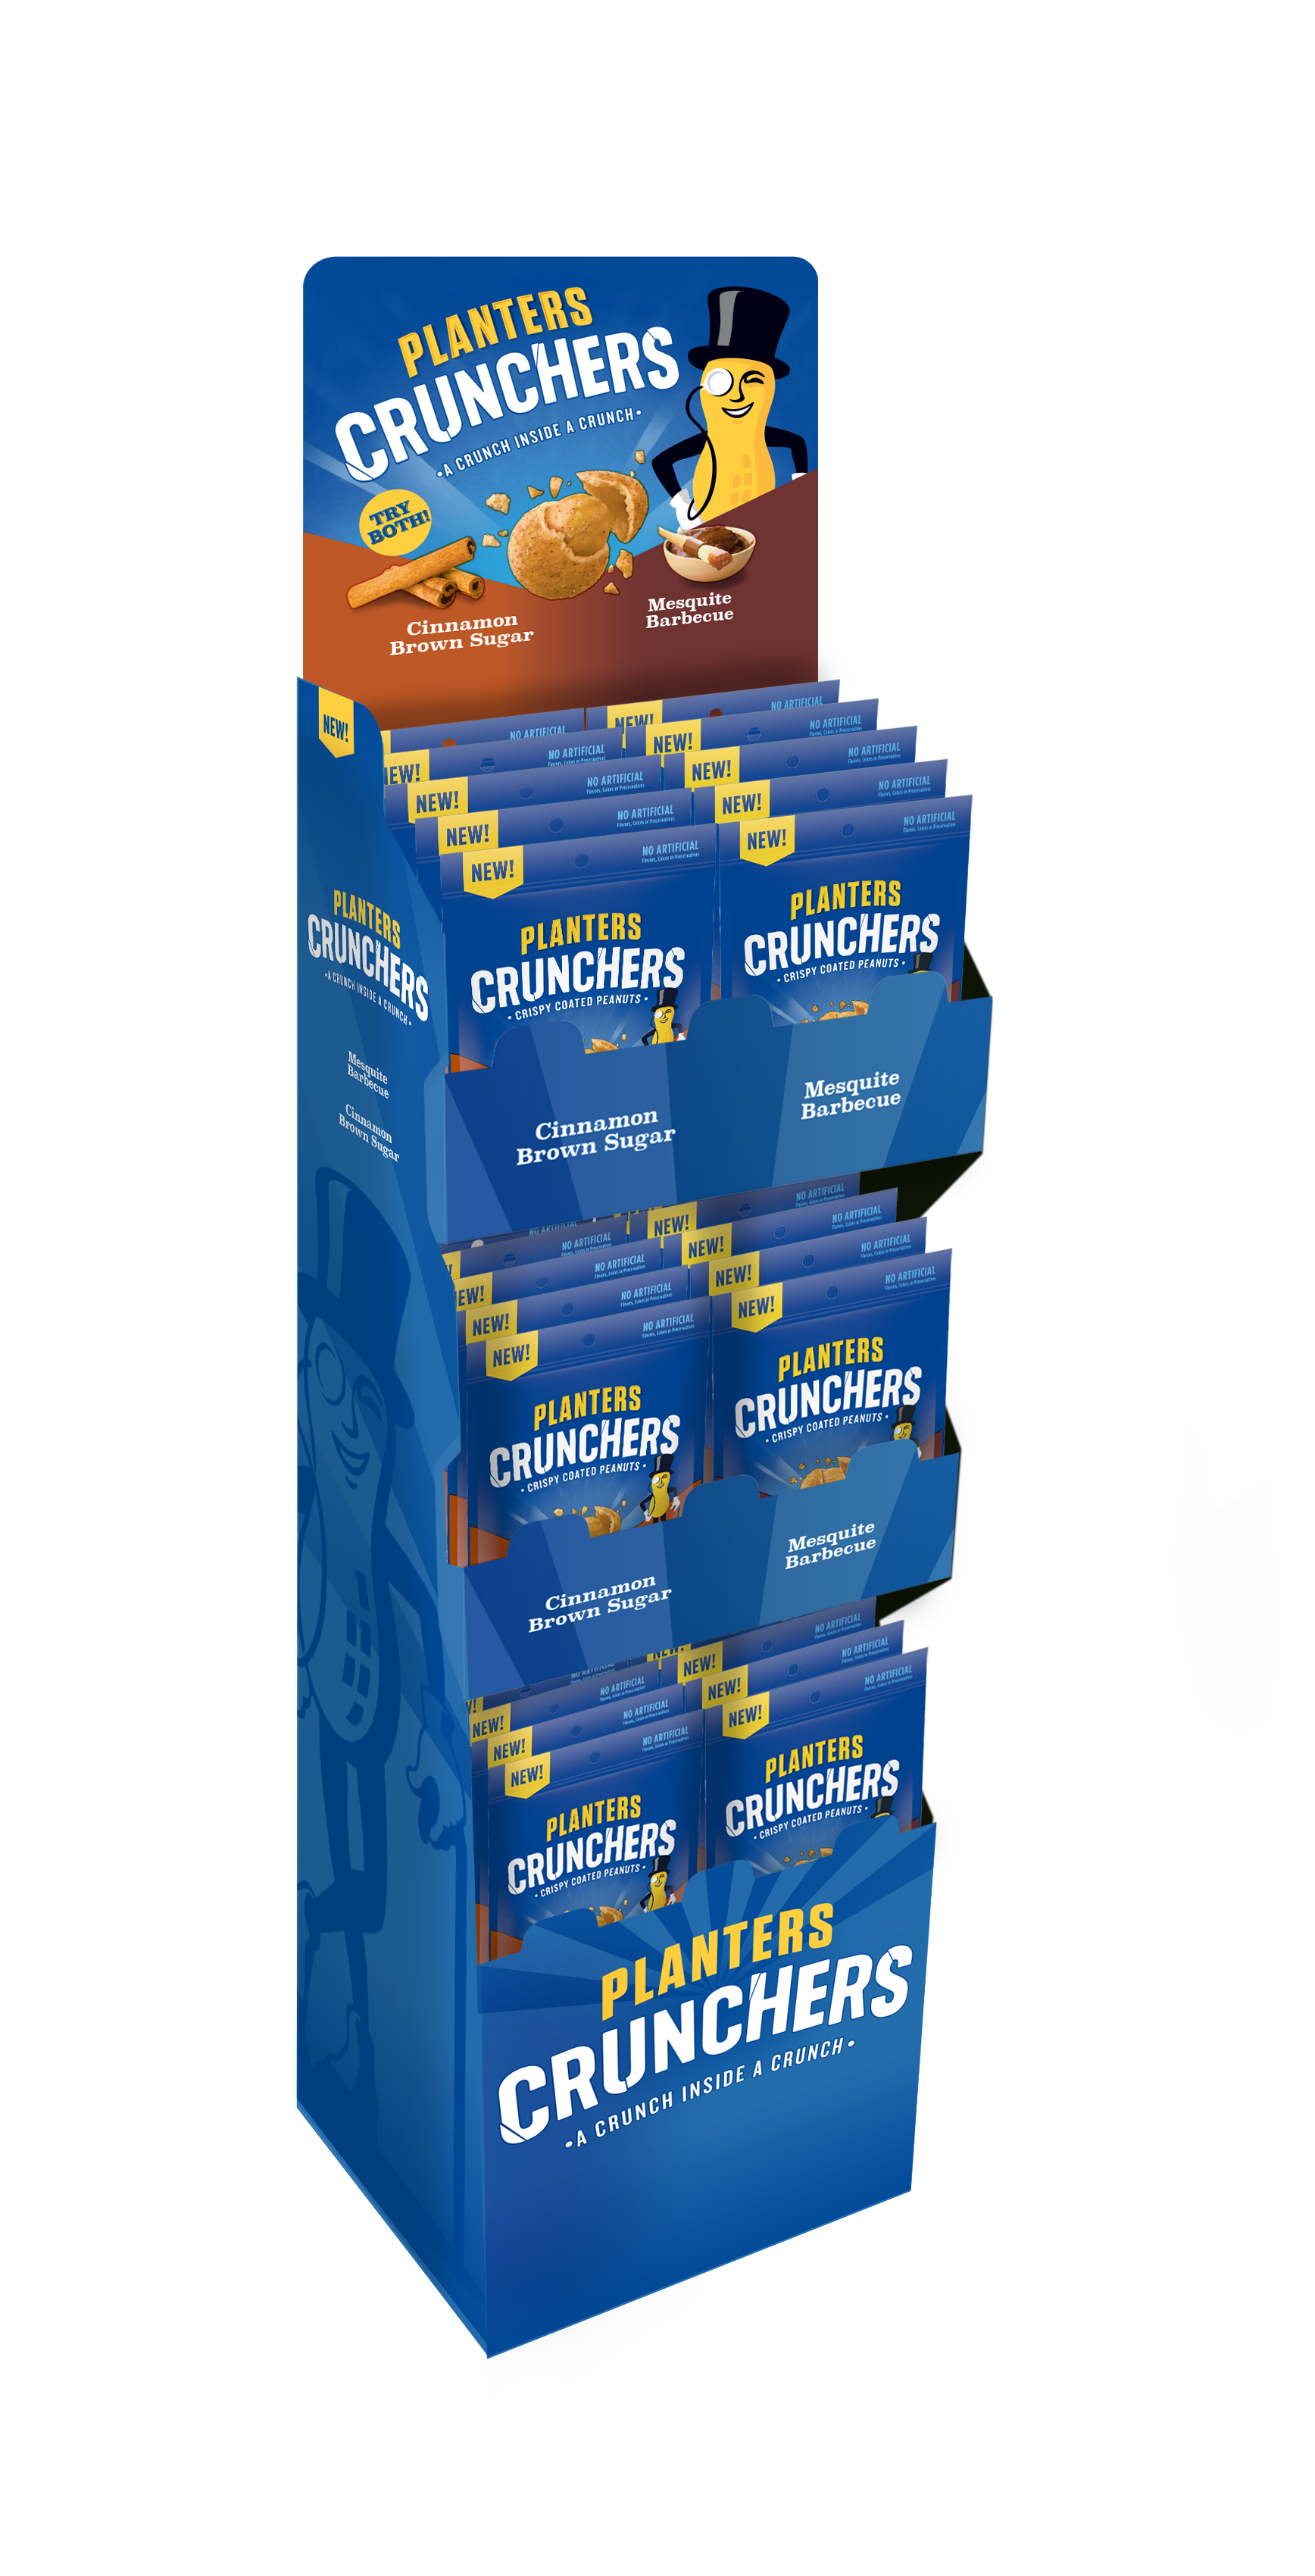 Cruncher POP Stand , 4 color Header card, and 2 color POP. Header card was created from existing Planters packaging, the rest is new @soulsight